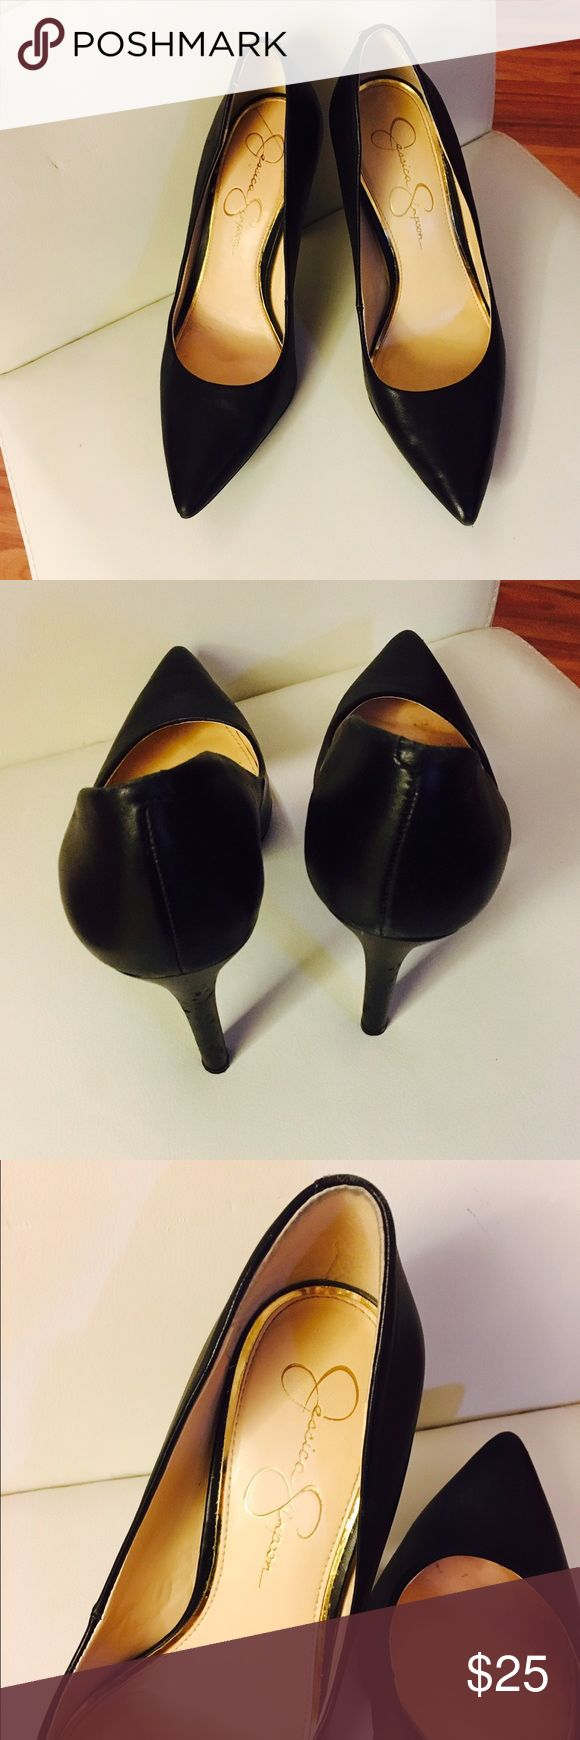 Jessica Simpson  Pointed-Toe Black Pumps Jessica Simpson  Pointed-Toe ´Black Pumps on good condition little marks as shown in the last pic check pics 013455732 Jessica Simpson Shoes Heels